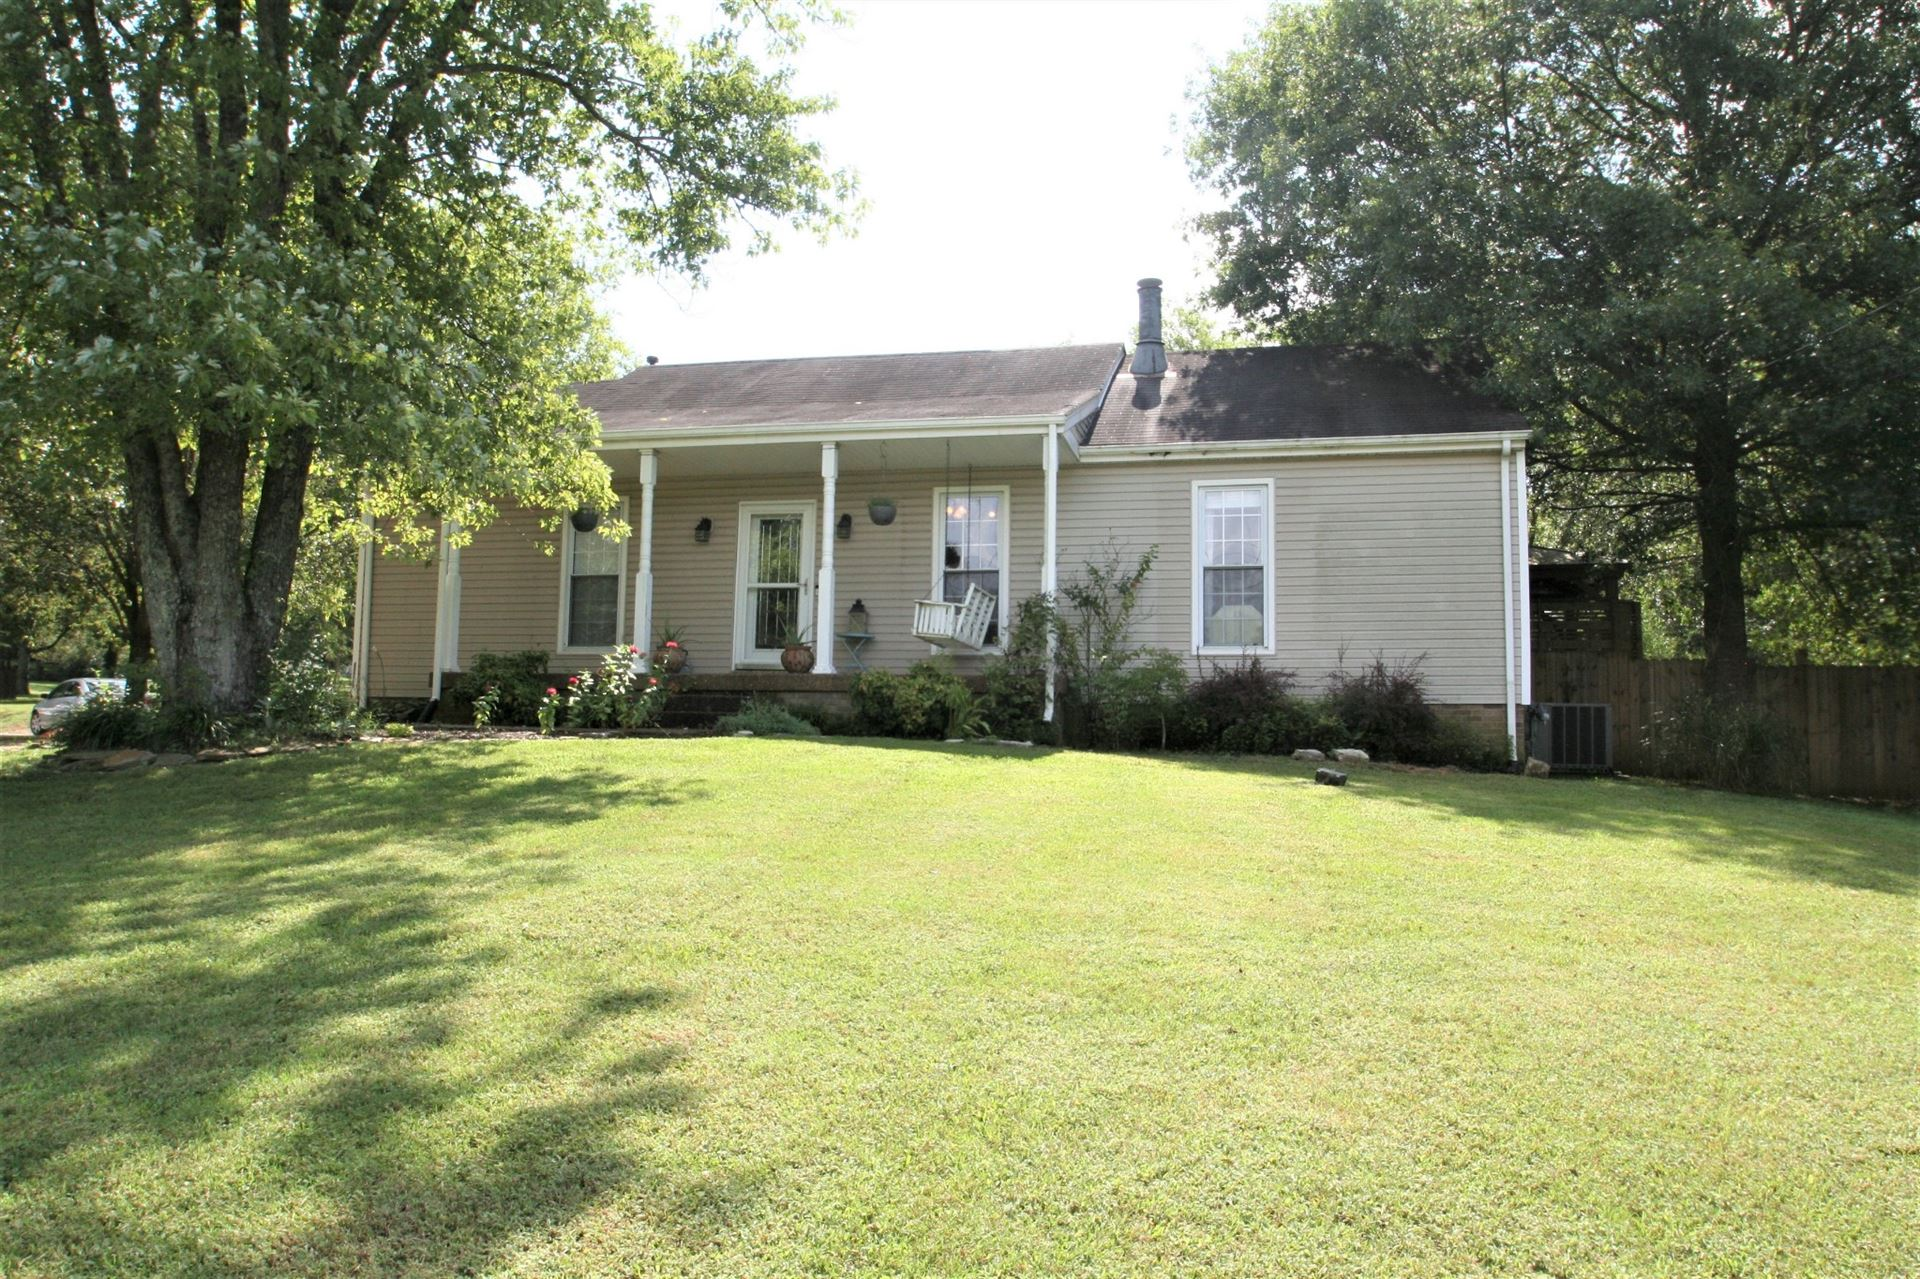 1408 Bluegrass Rd, Nolensville, TN 37135 - MLS#: 2188793